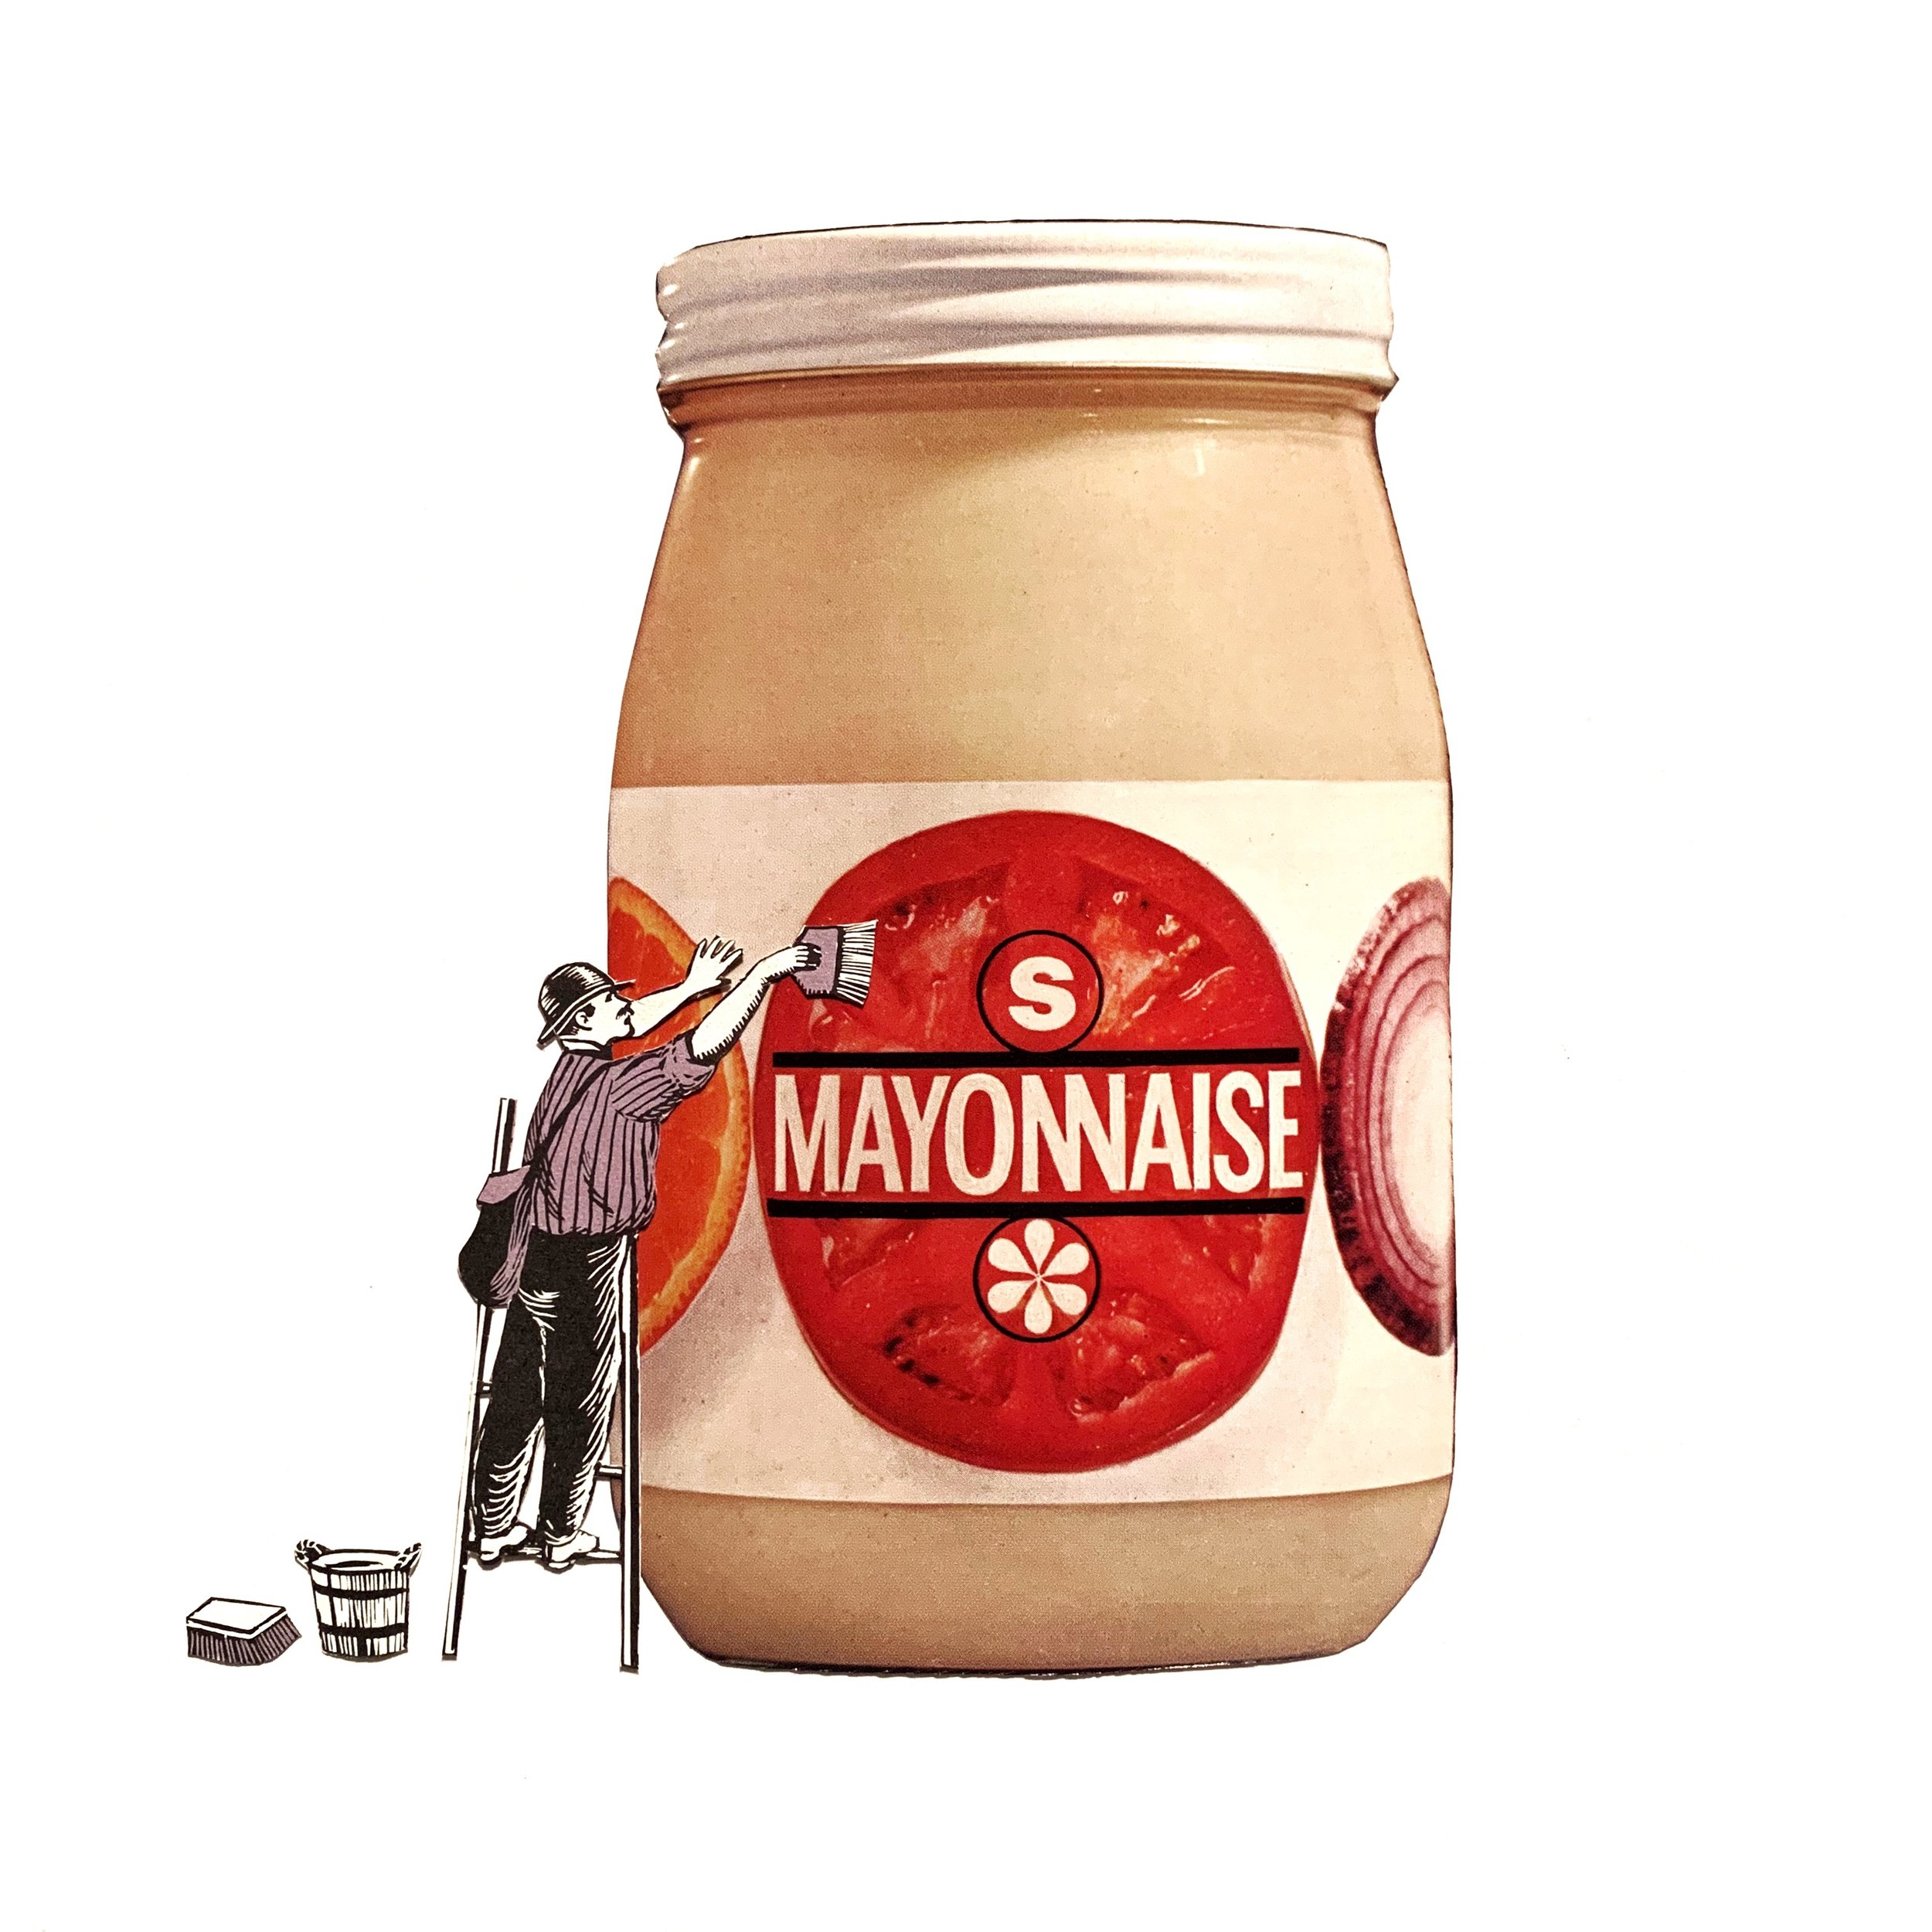 i-have-zero-energy-left-so-i-am-just-going-to-talk-about-mayonnaise-my-third-favorite-condiment-and-yes-i-have-a-list_46573447524_o.jpg